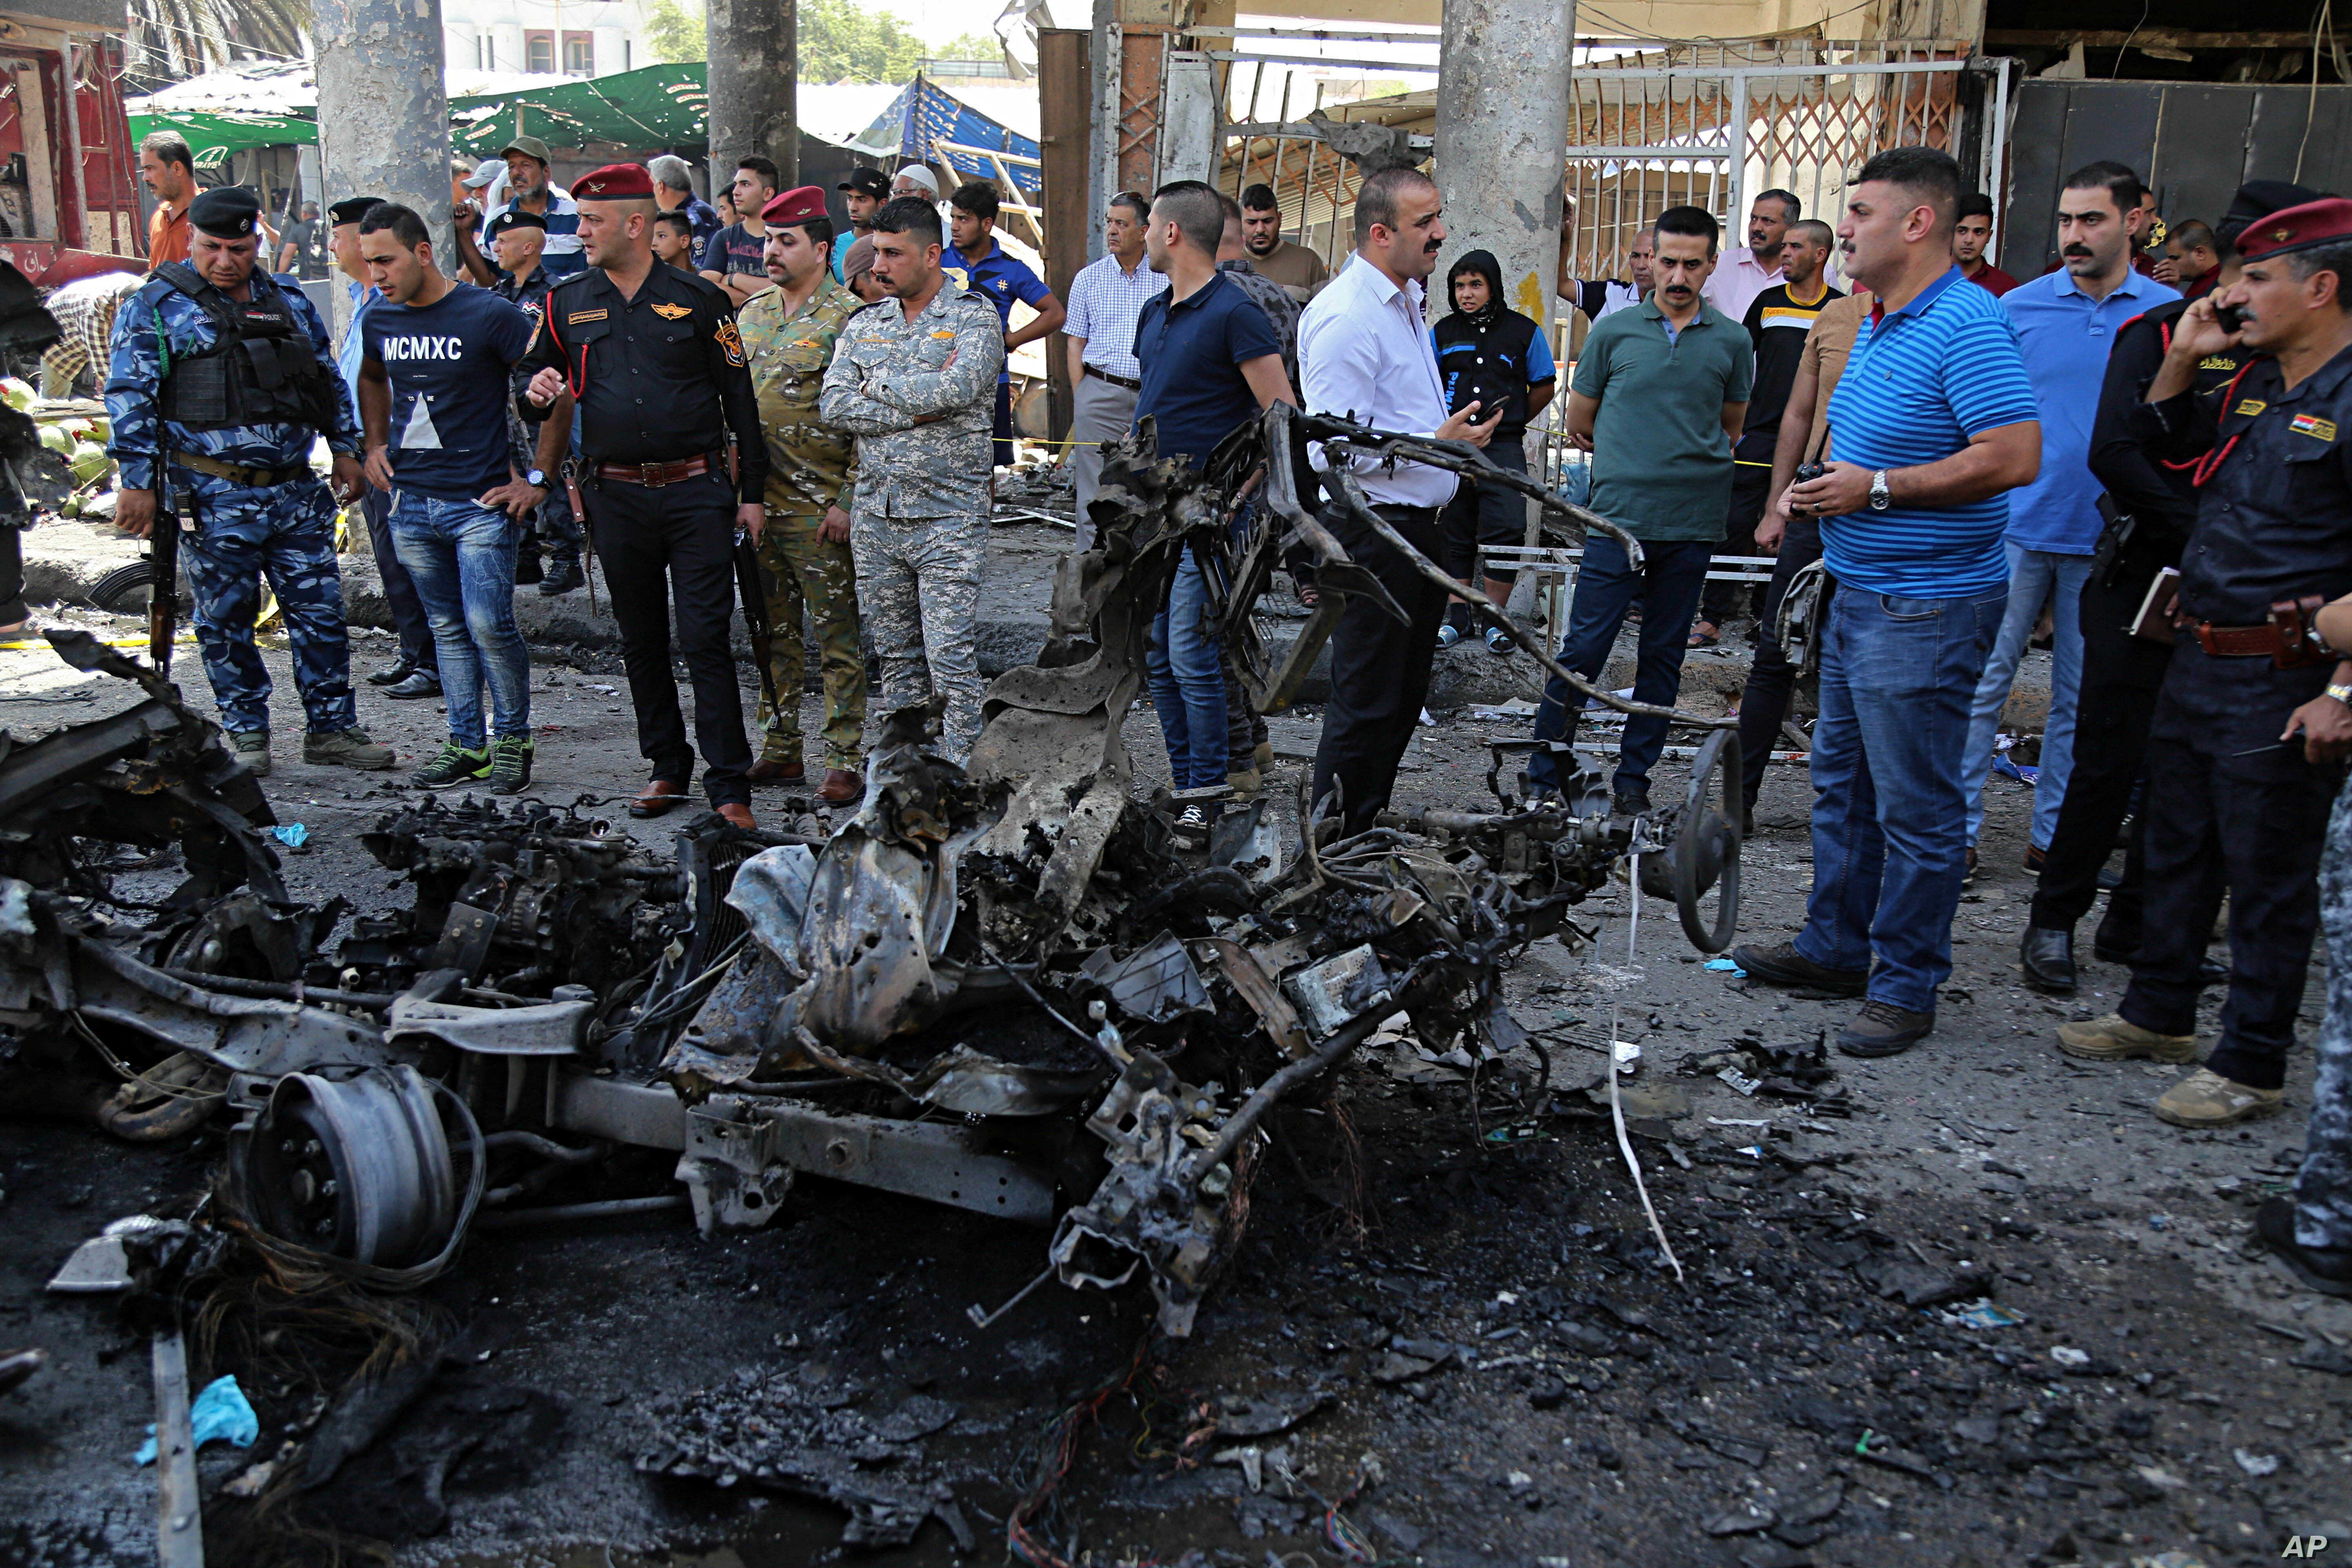 Iraqi security forces and civilians inspect the site of a deadly car bomb explosion, in Baghdad, Iraq, May 30, 2017.